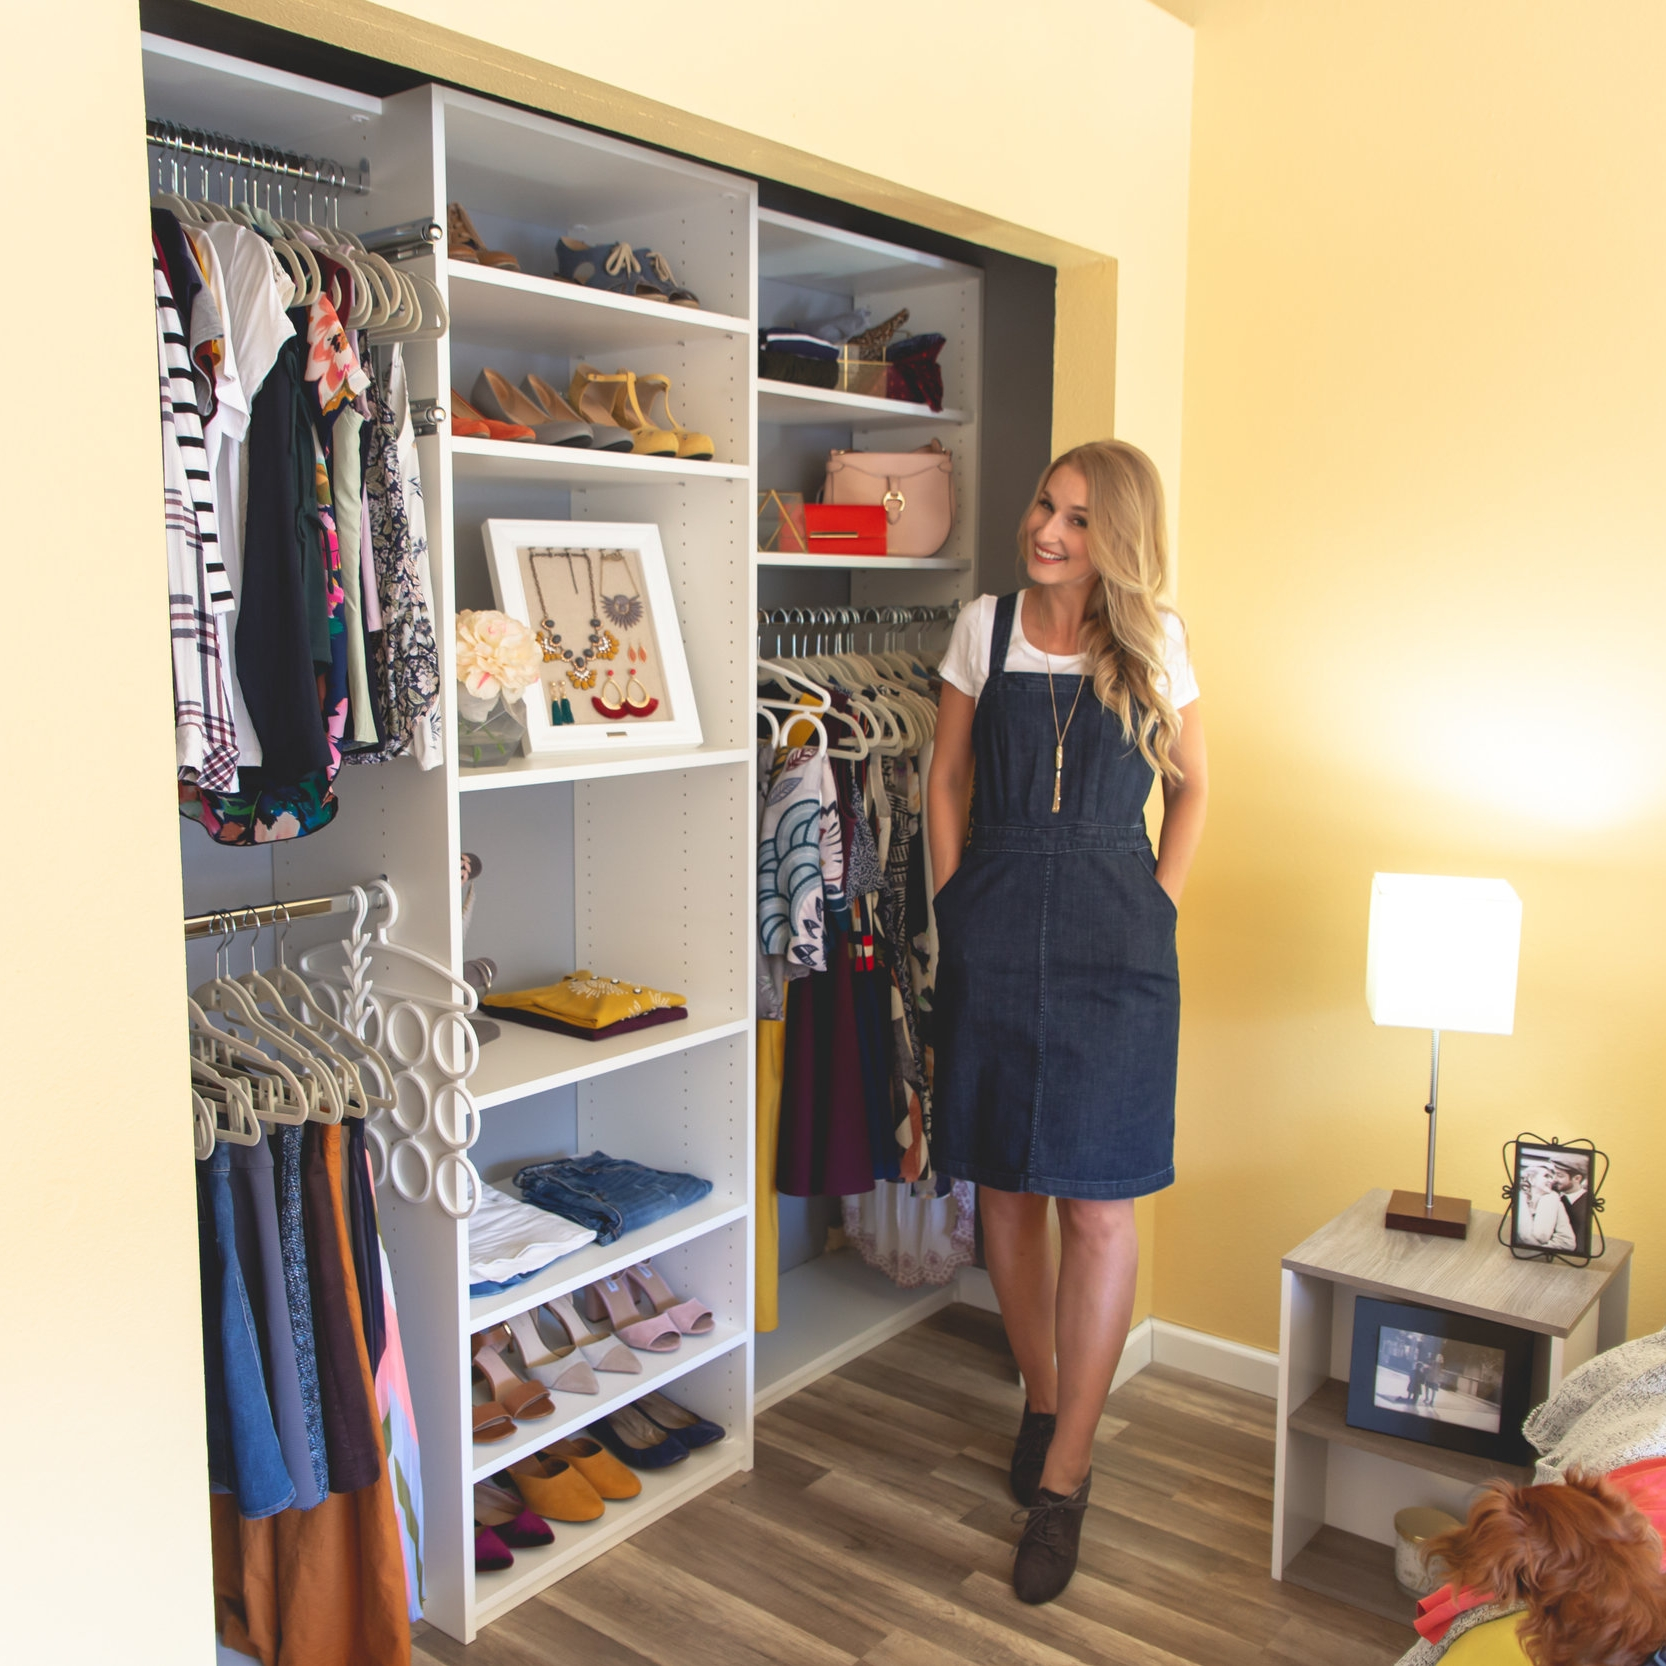 5-Day Shop Your Closet Challenge - The Style Shop by Sandi Mele